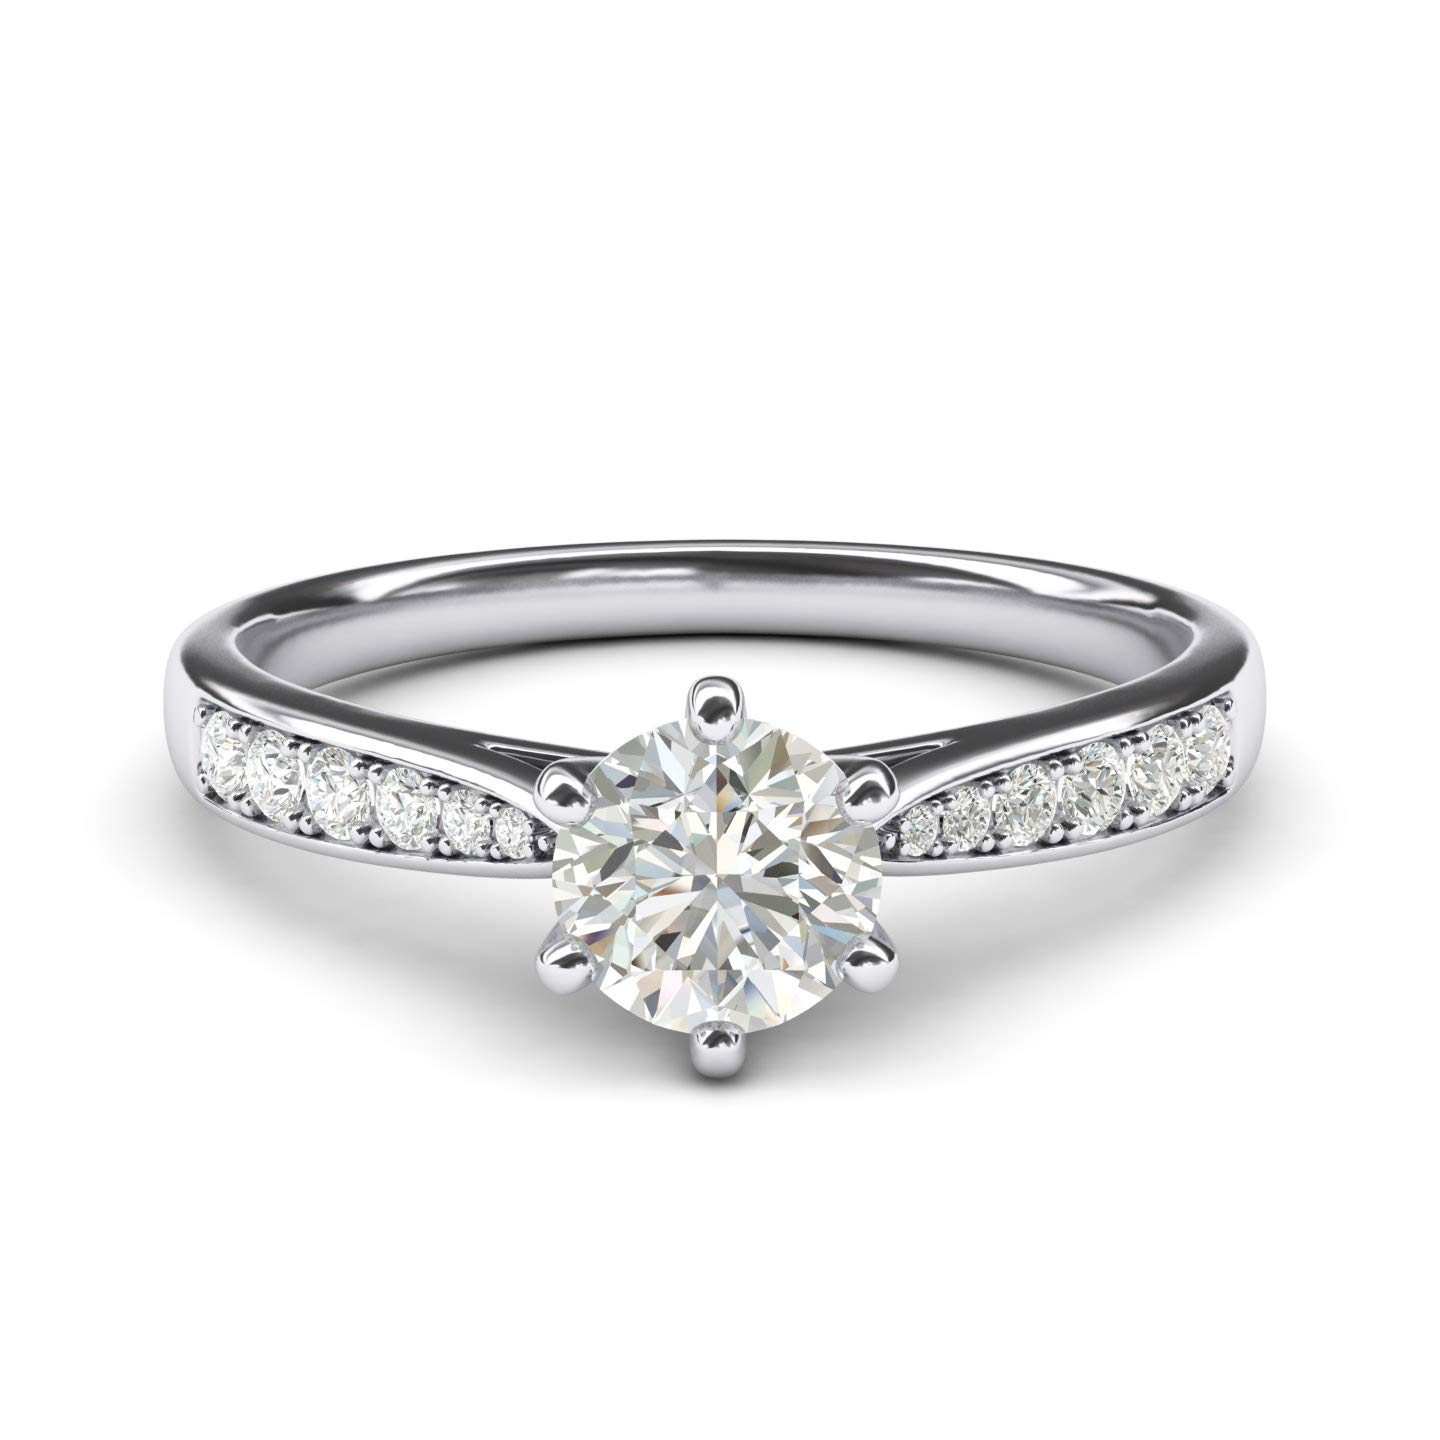 10k white gold 1.0 CT Classic 6-Prong Simulated Diamond Engagement Ring Graduated Side Stones Promise Bridal Ring (5)